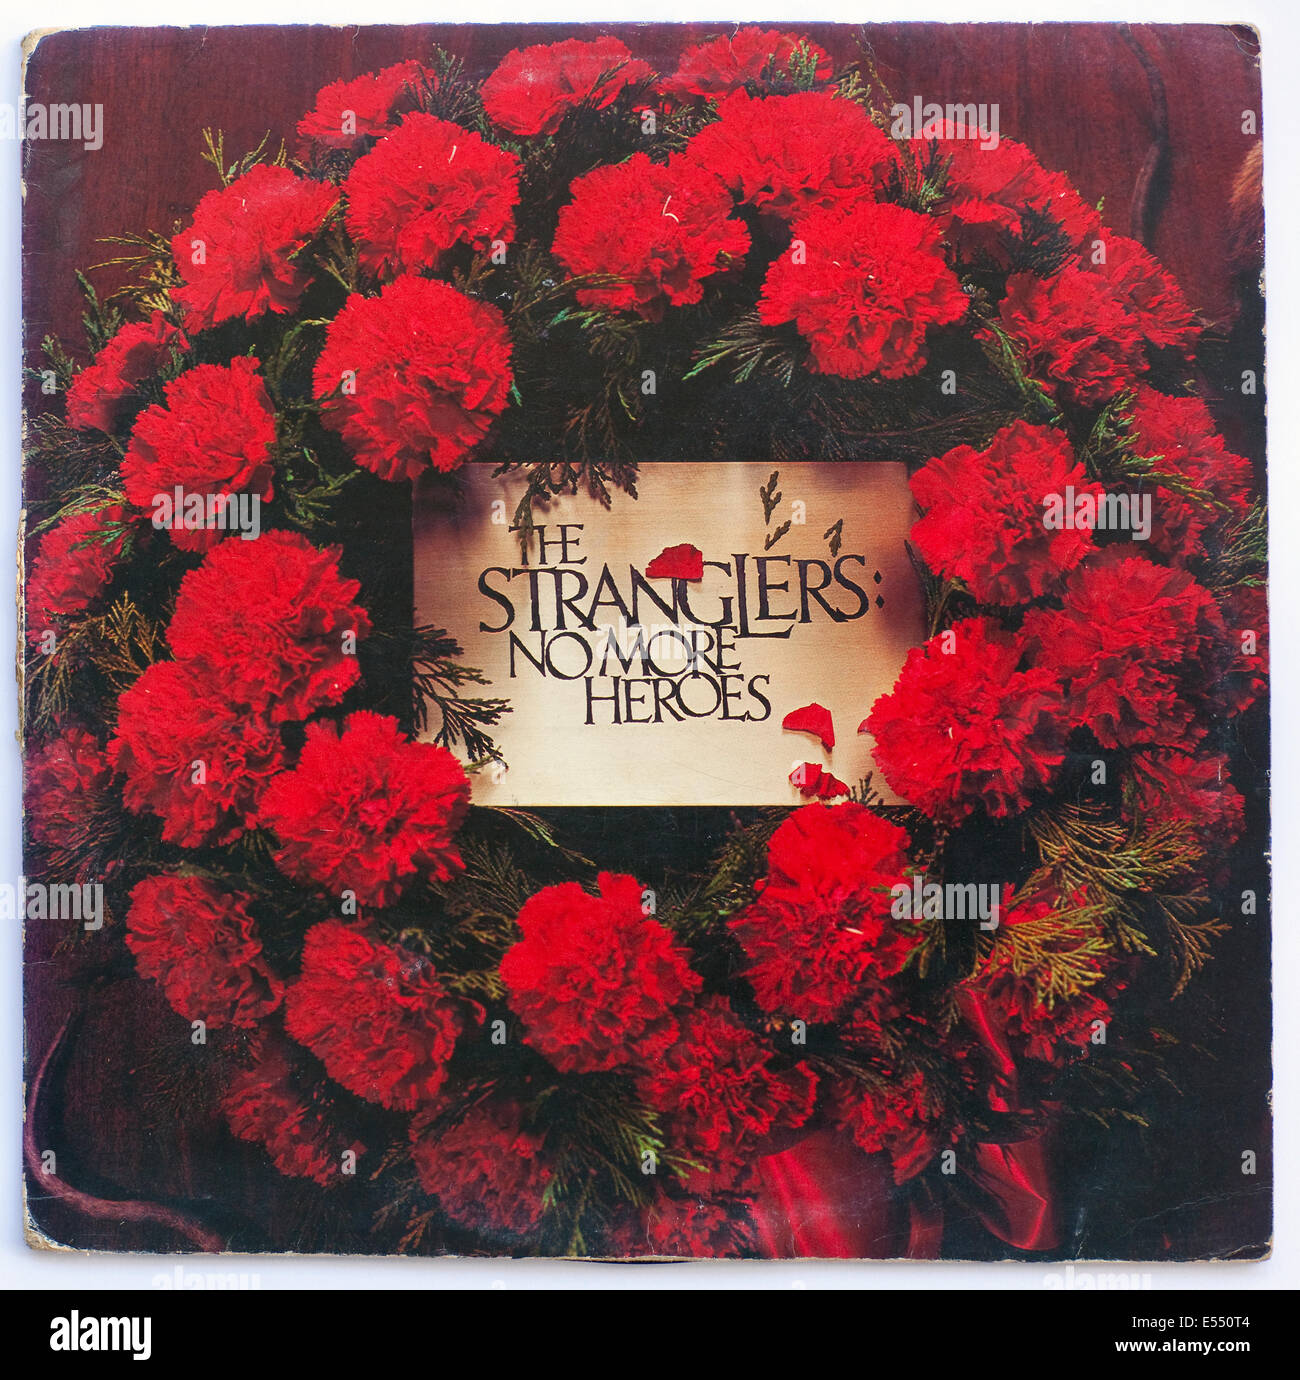 The Stranglers - No More Heroes vinyl album cover, released 1977 on United Records - Stock Image